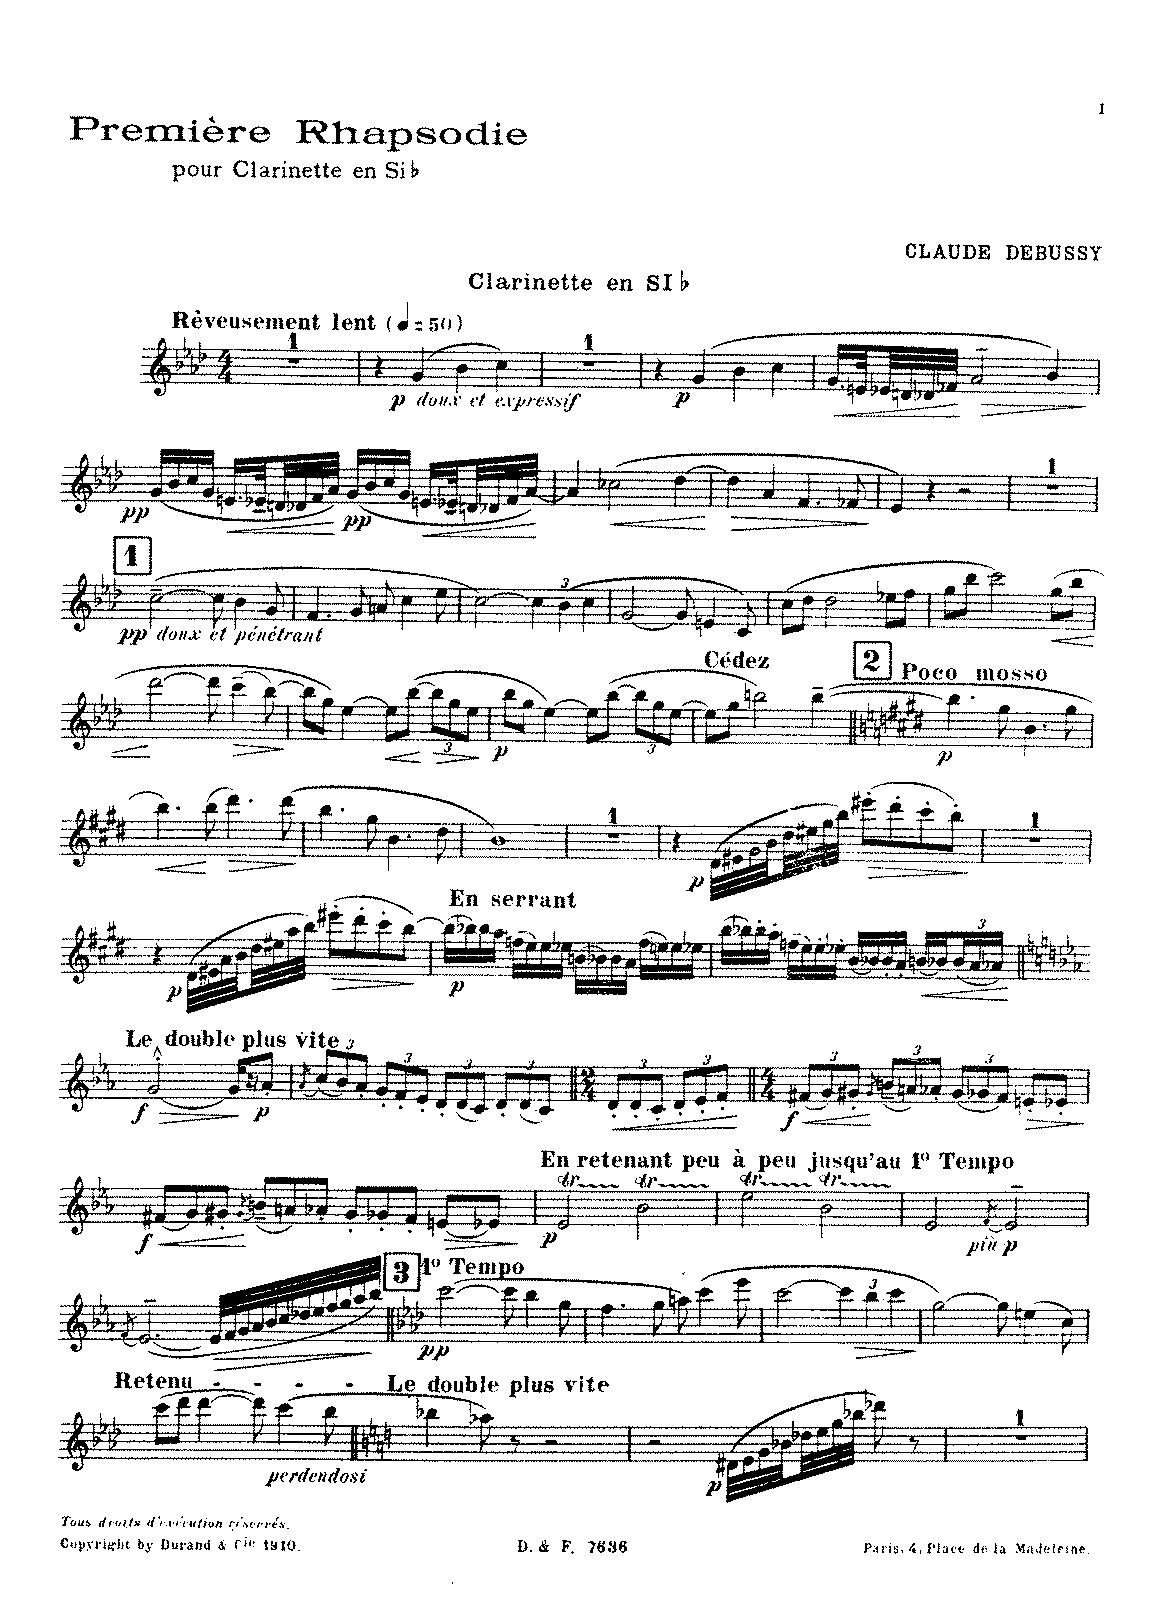 Debussy - Première Rhapsodie (clarinet and piano).pdf